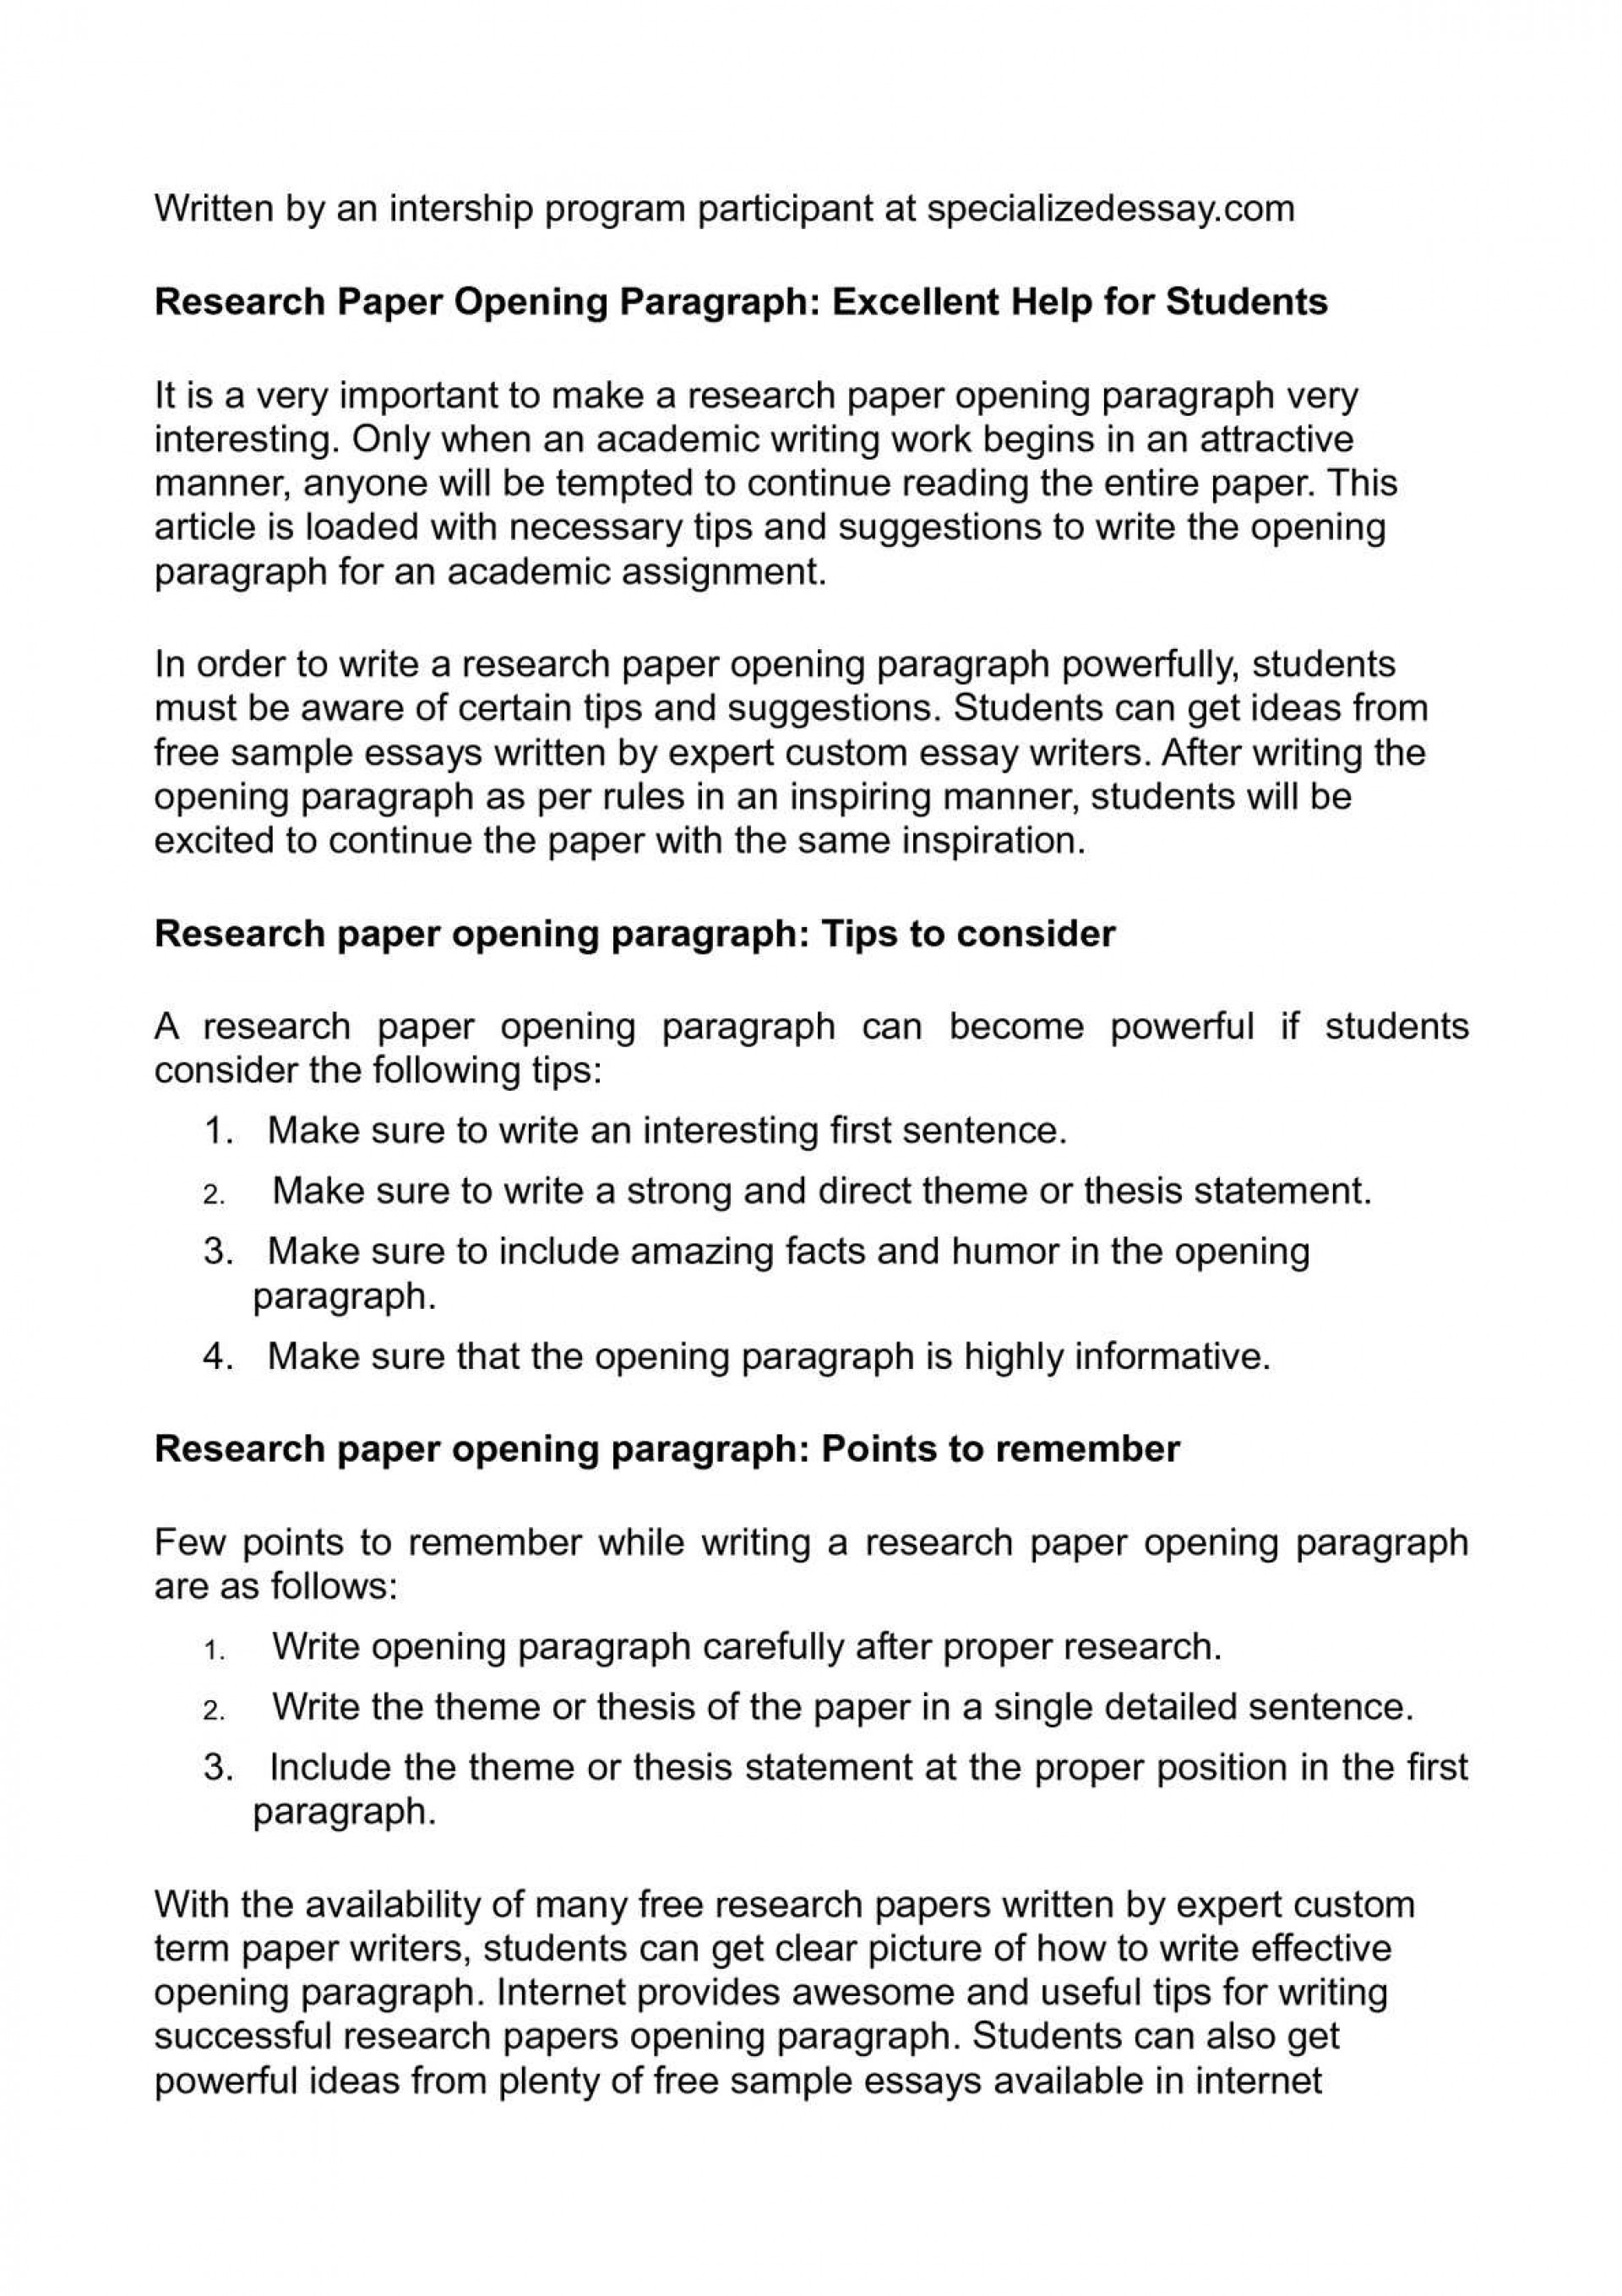 002 P1 How To Make Research Paper Formidable A Interesting Writing Fun Catchy Title For 1920